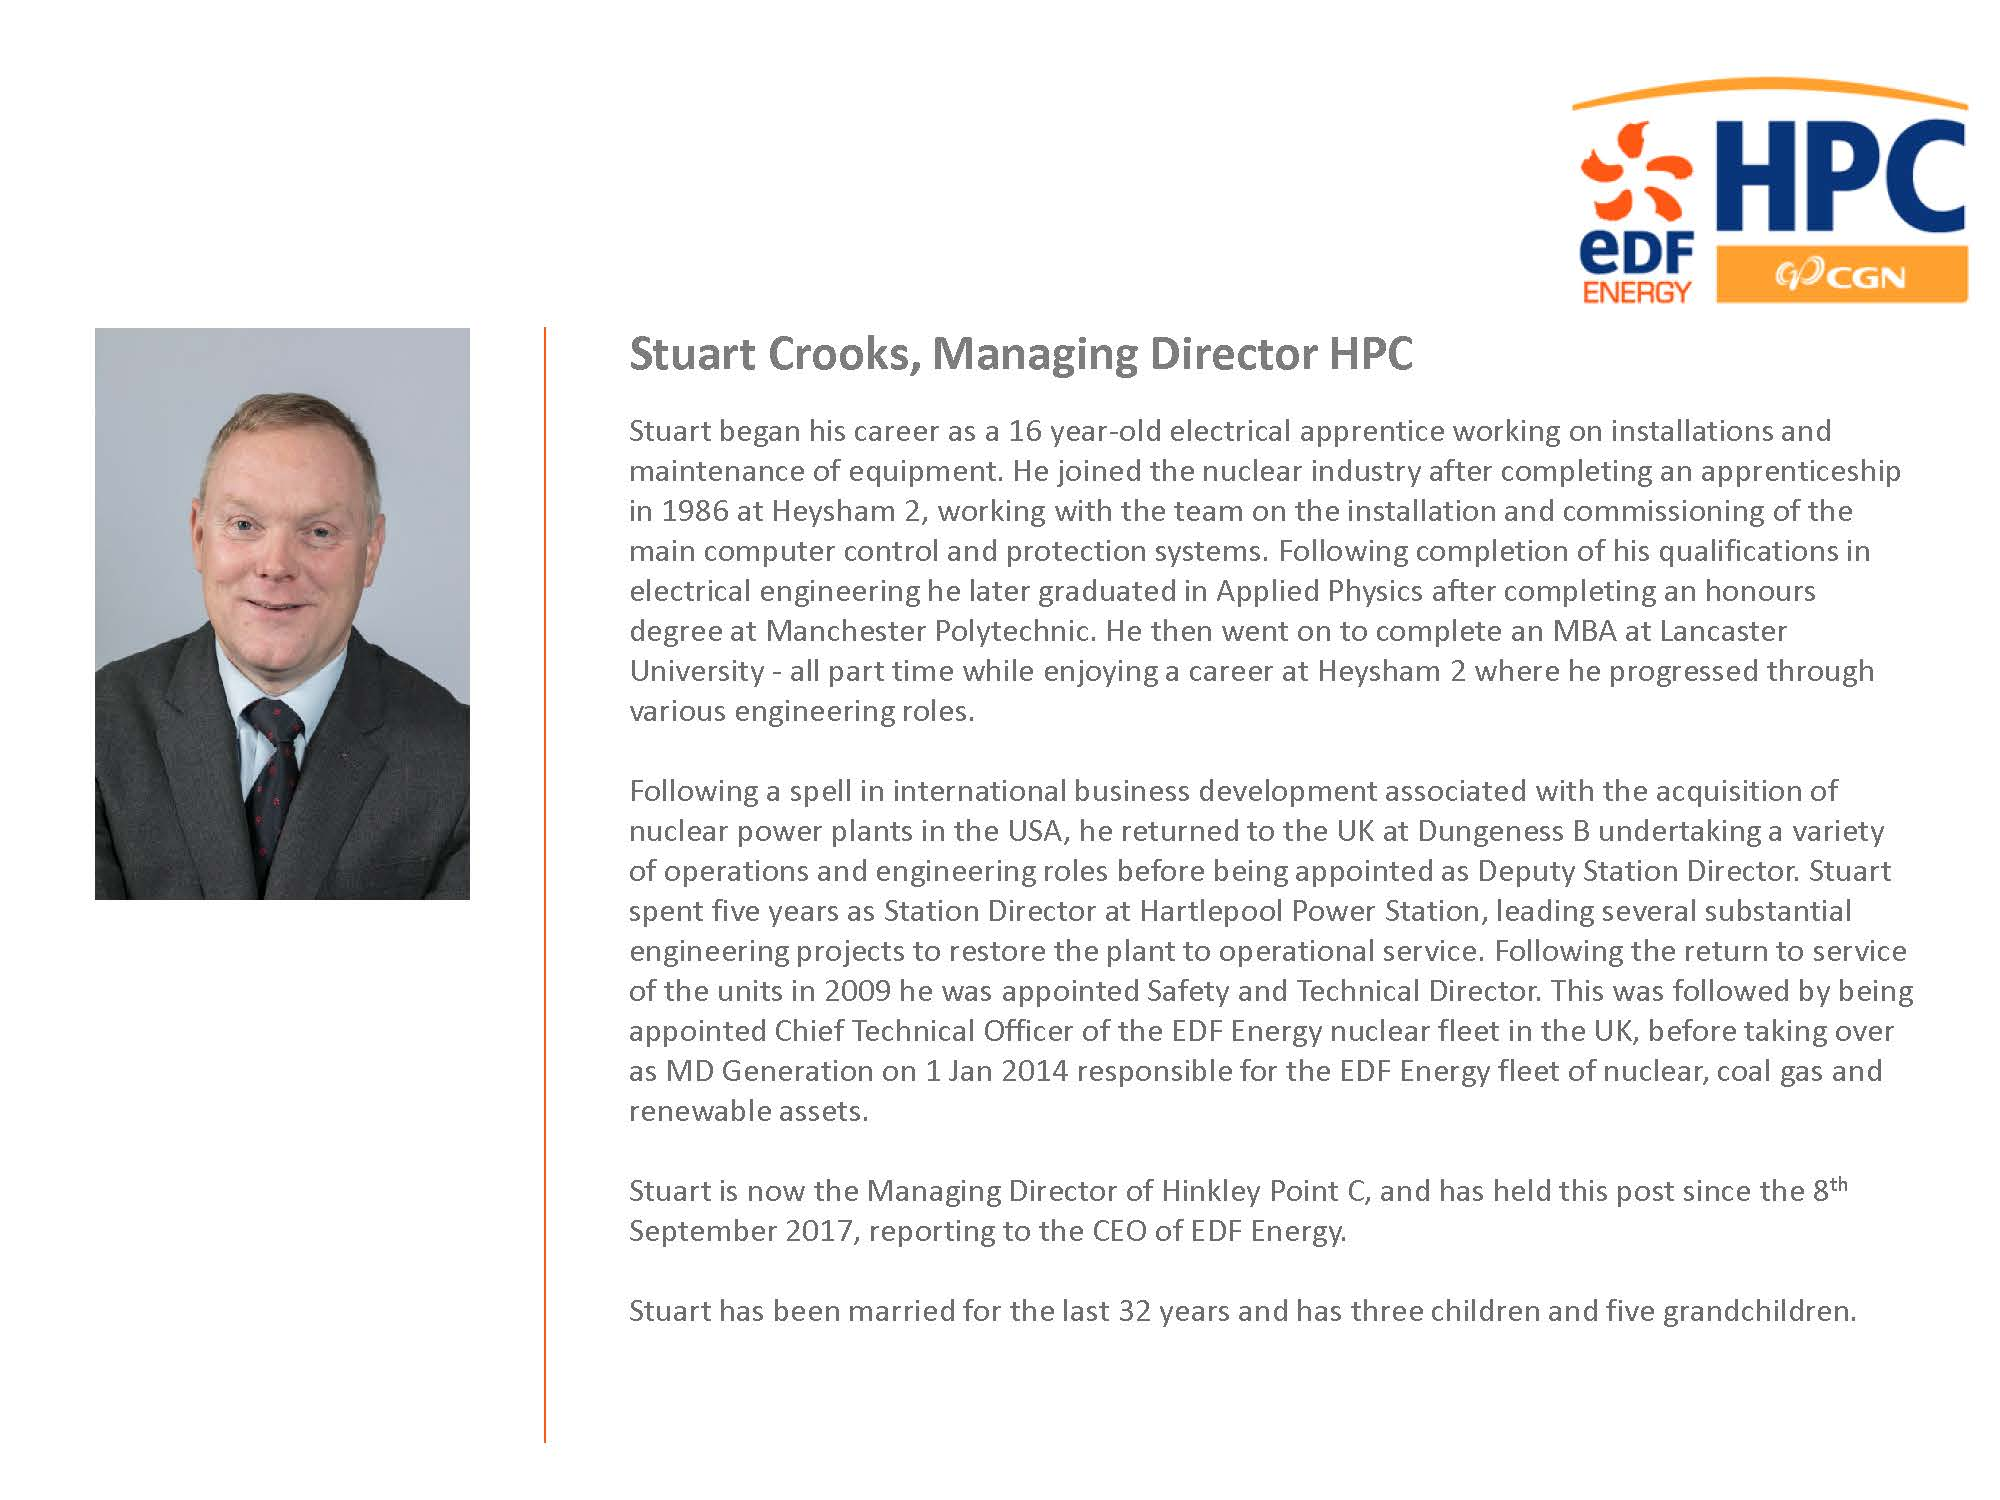 Stuart Crooks Biography March 2019